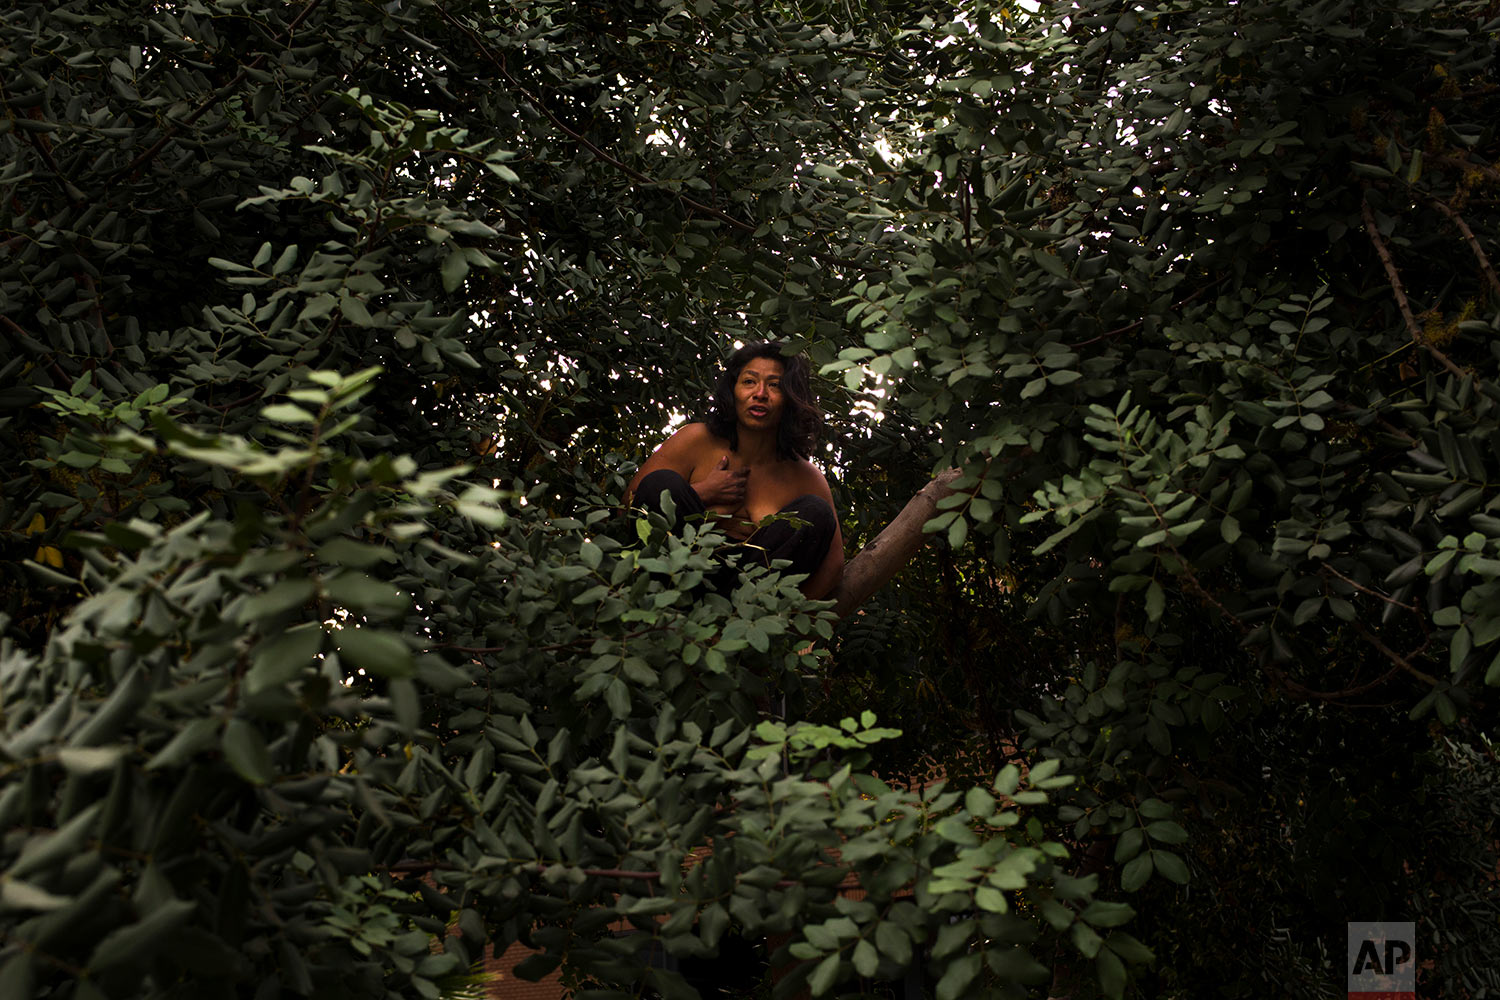 A mentally-ill homeless woman talks into the air in Spanish while sitting in a tree naked Friday, Nov. 3, 2017, in Santa Ana, Calif. A passing homeless man, who said he had seen her in a tree a few times before, tossed some clothes to help her cover herself, but she declined his offer. (AP Photo/Jae C. Hong)